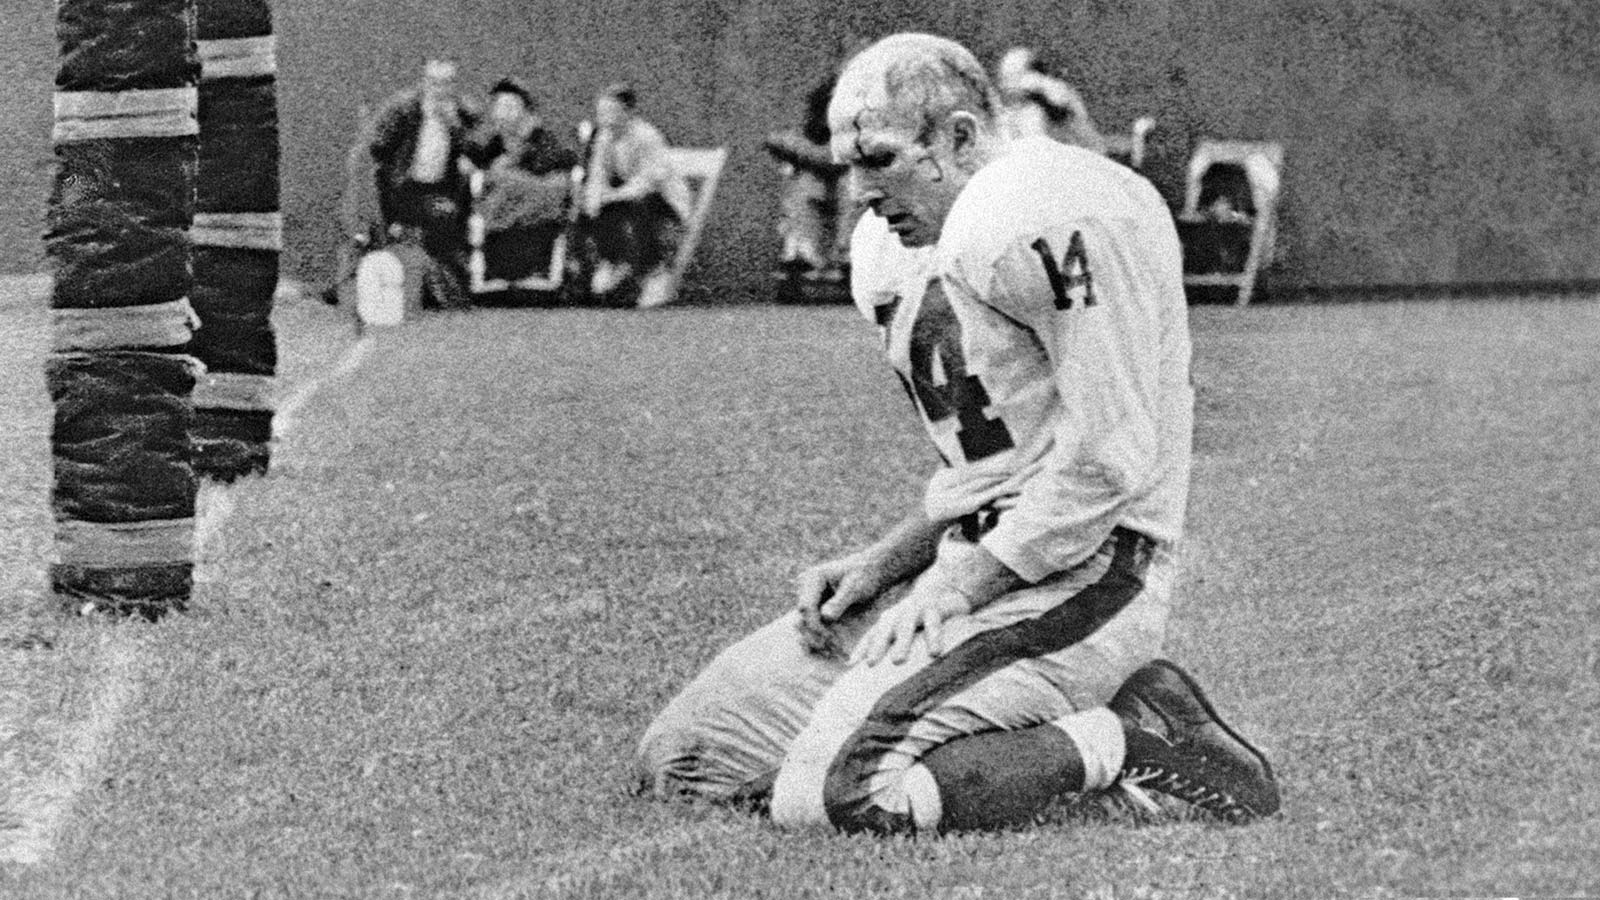 NFL Legend YA Tittle Dies at Age 90